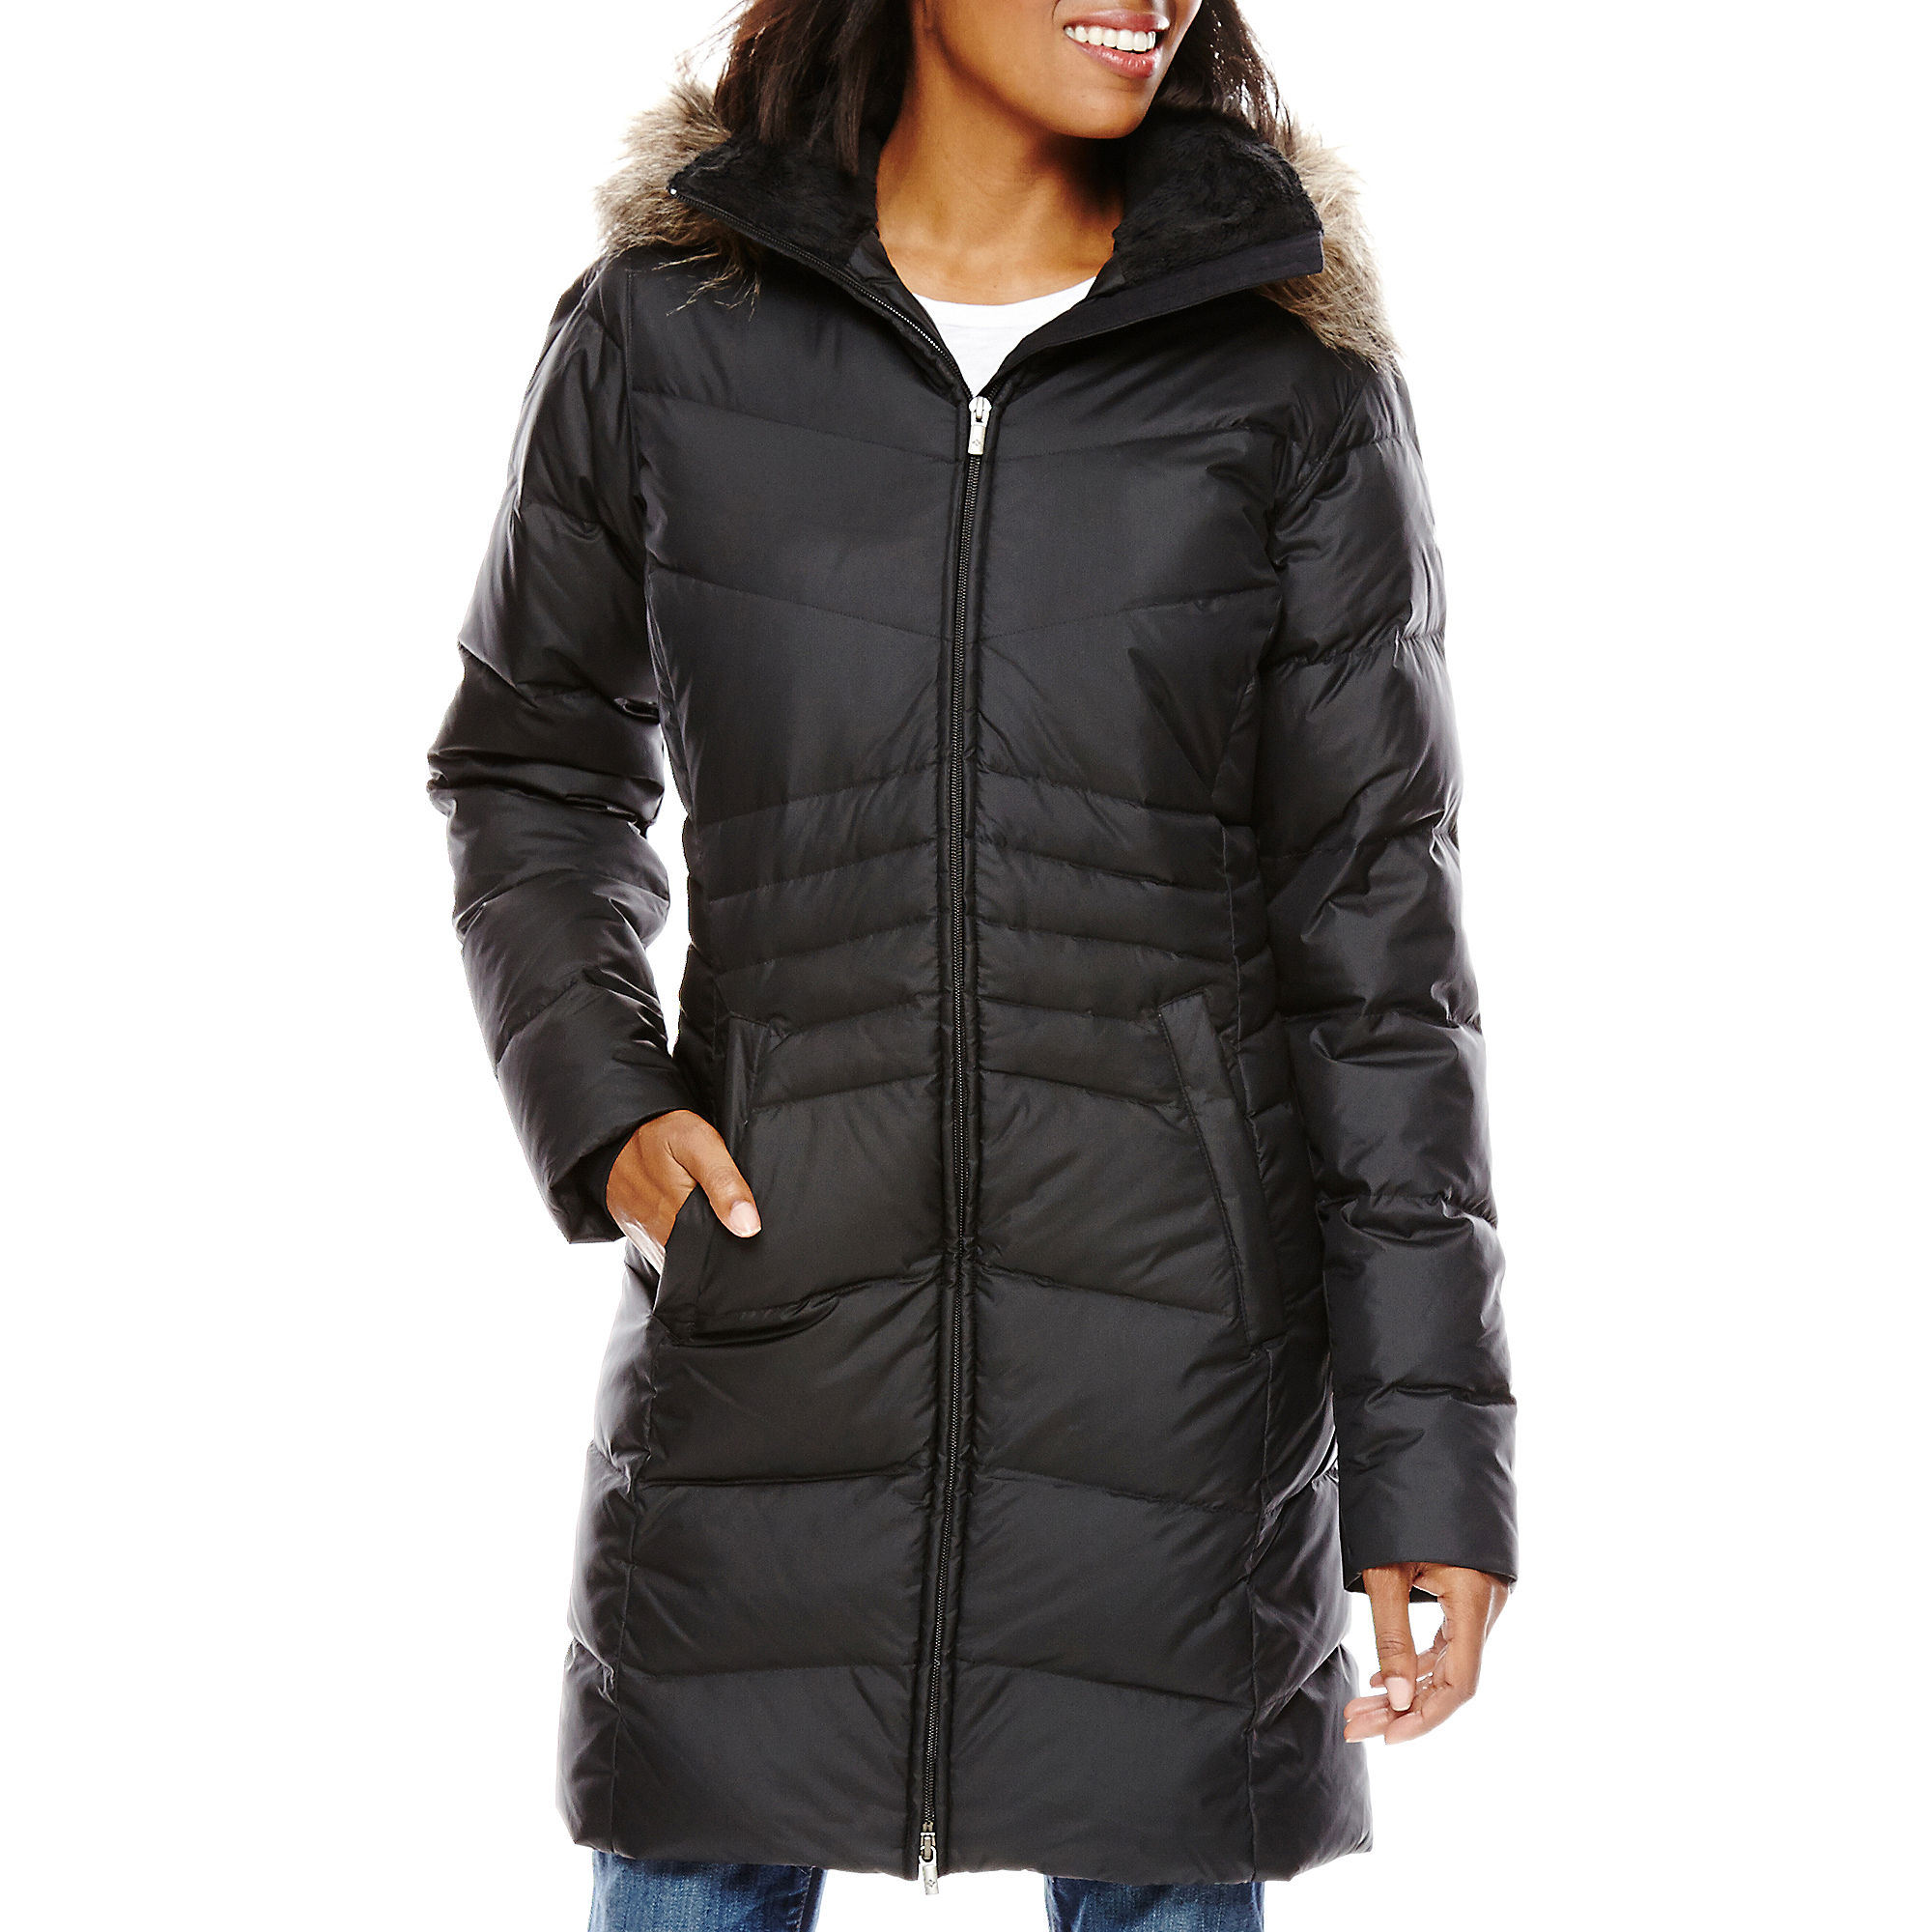 Save an Extra 25% off of these Outerwear DEALS